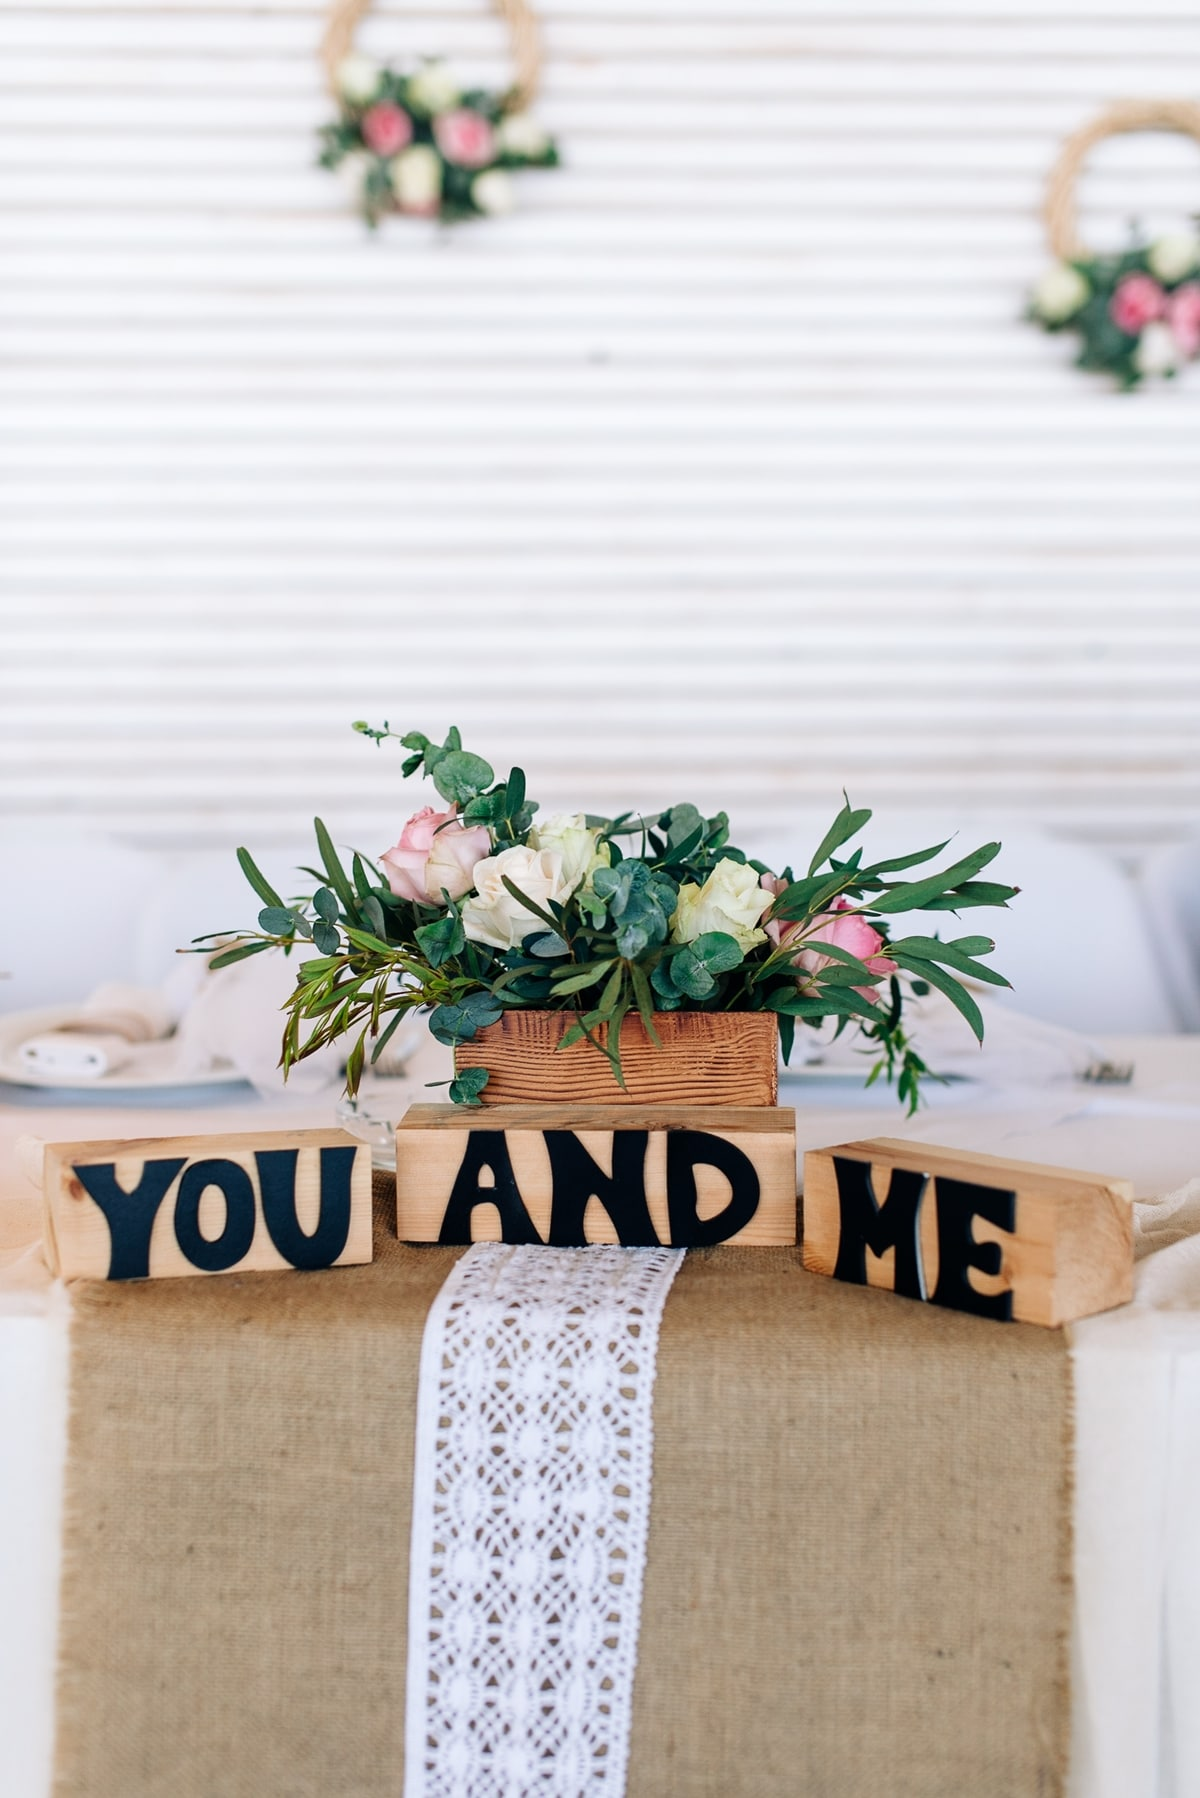 Wooden Mr and Mrs wedding sign